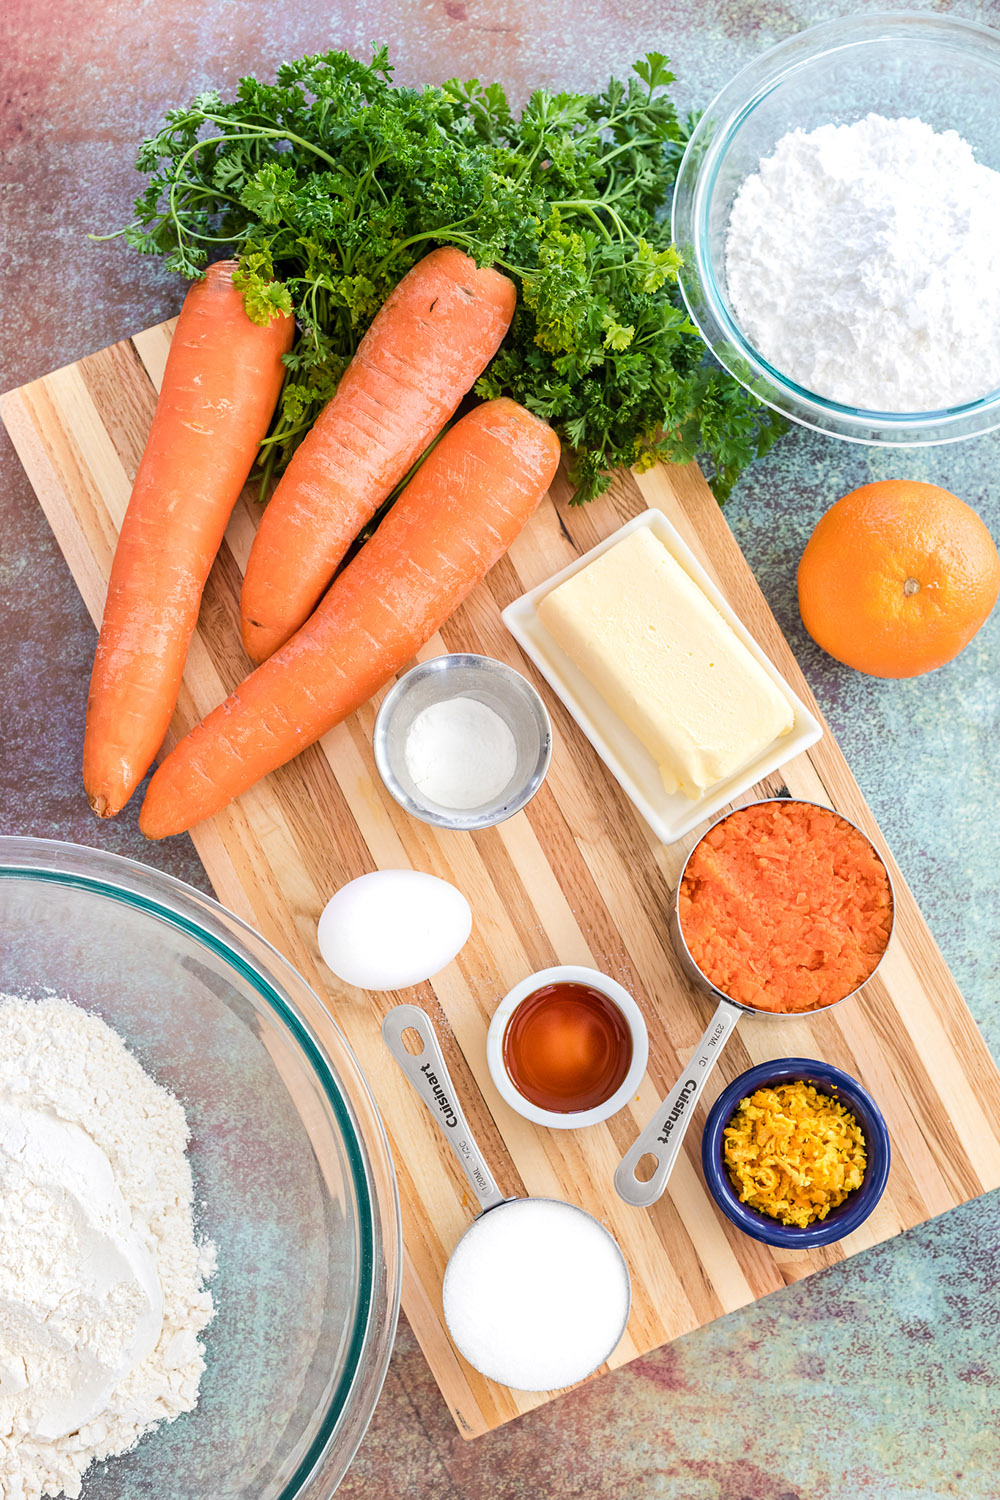 Carrots, sugar, flour, and other ingredients on a board.